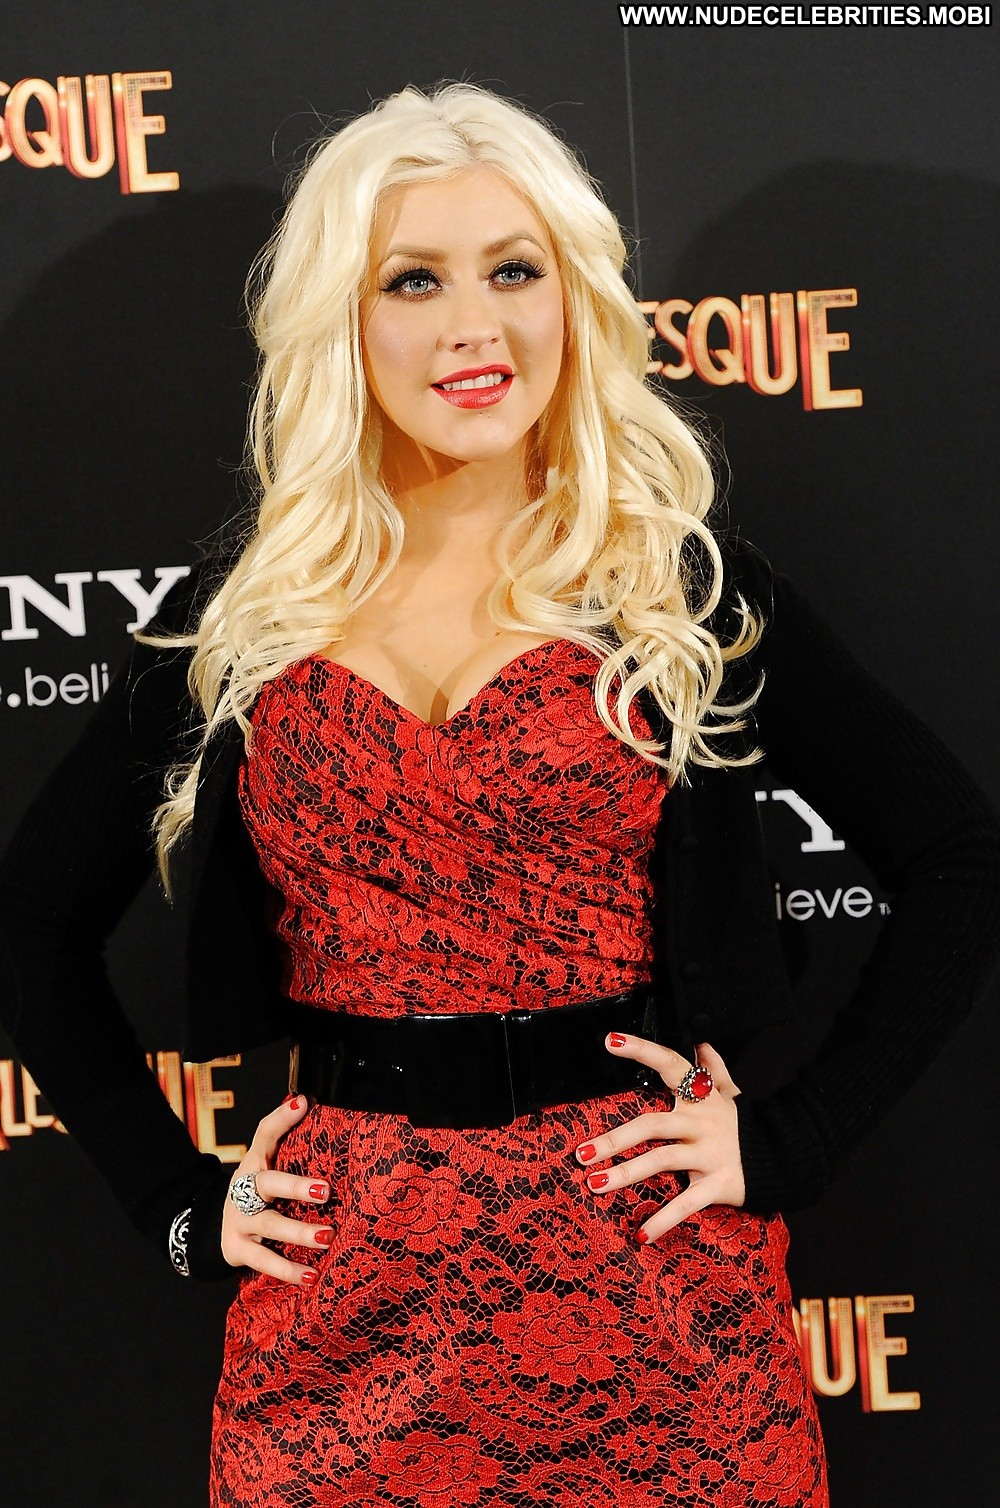 Free nude pictures of celebrity christina aguilera